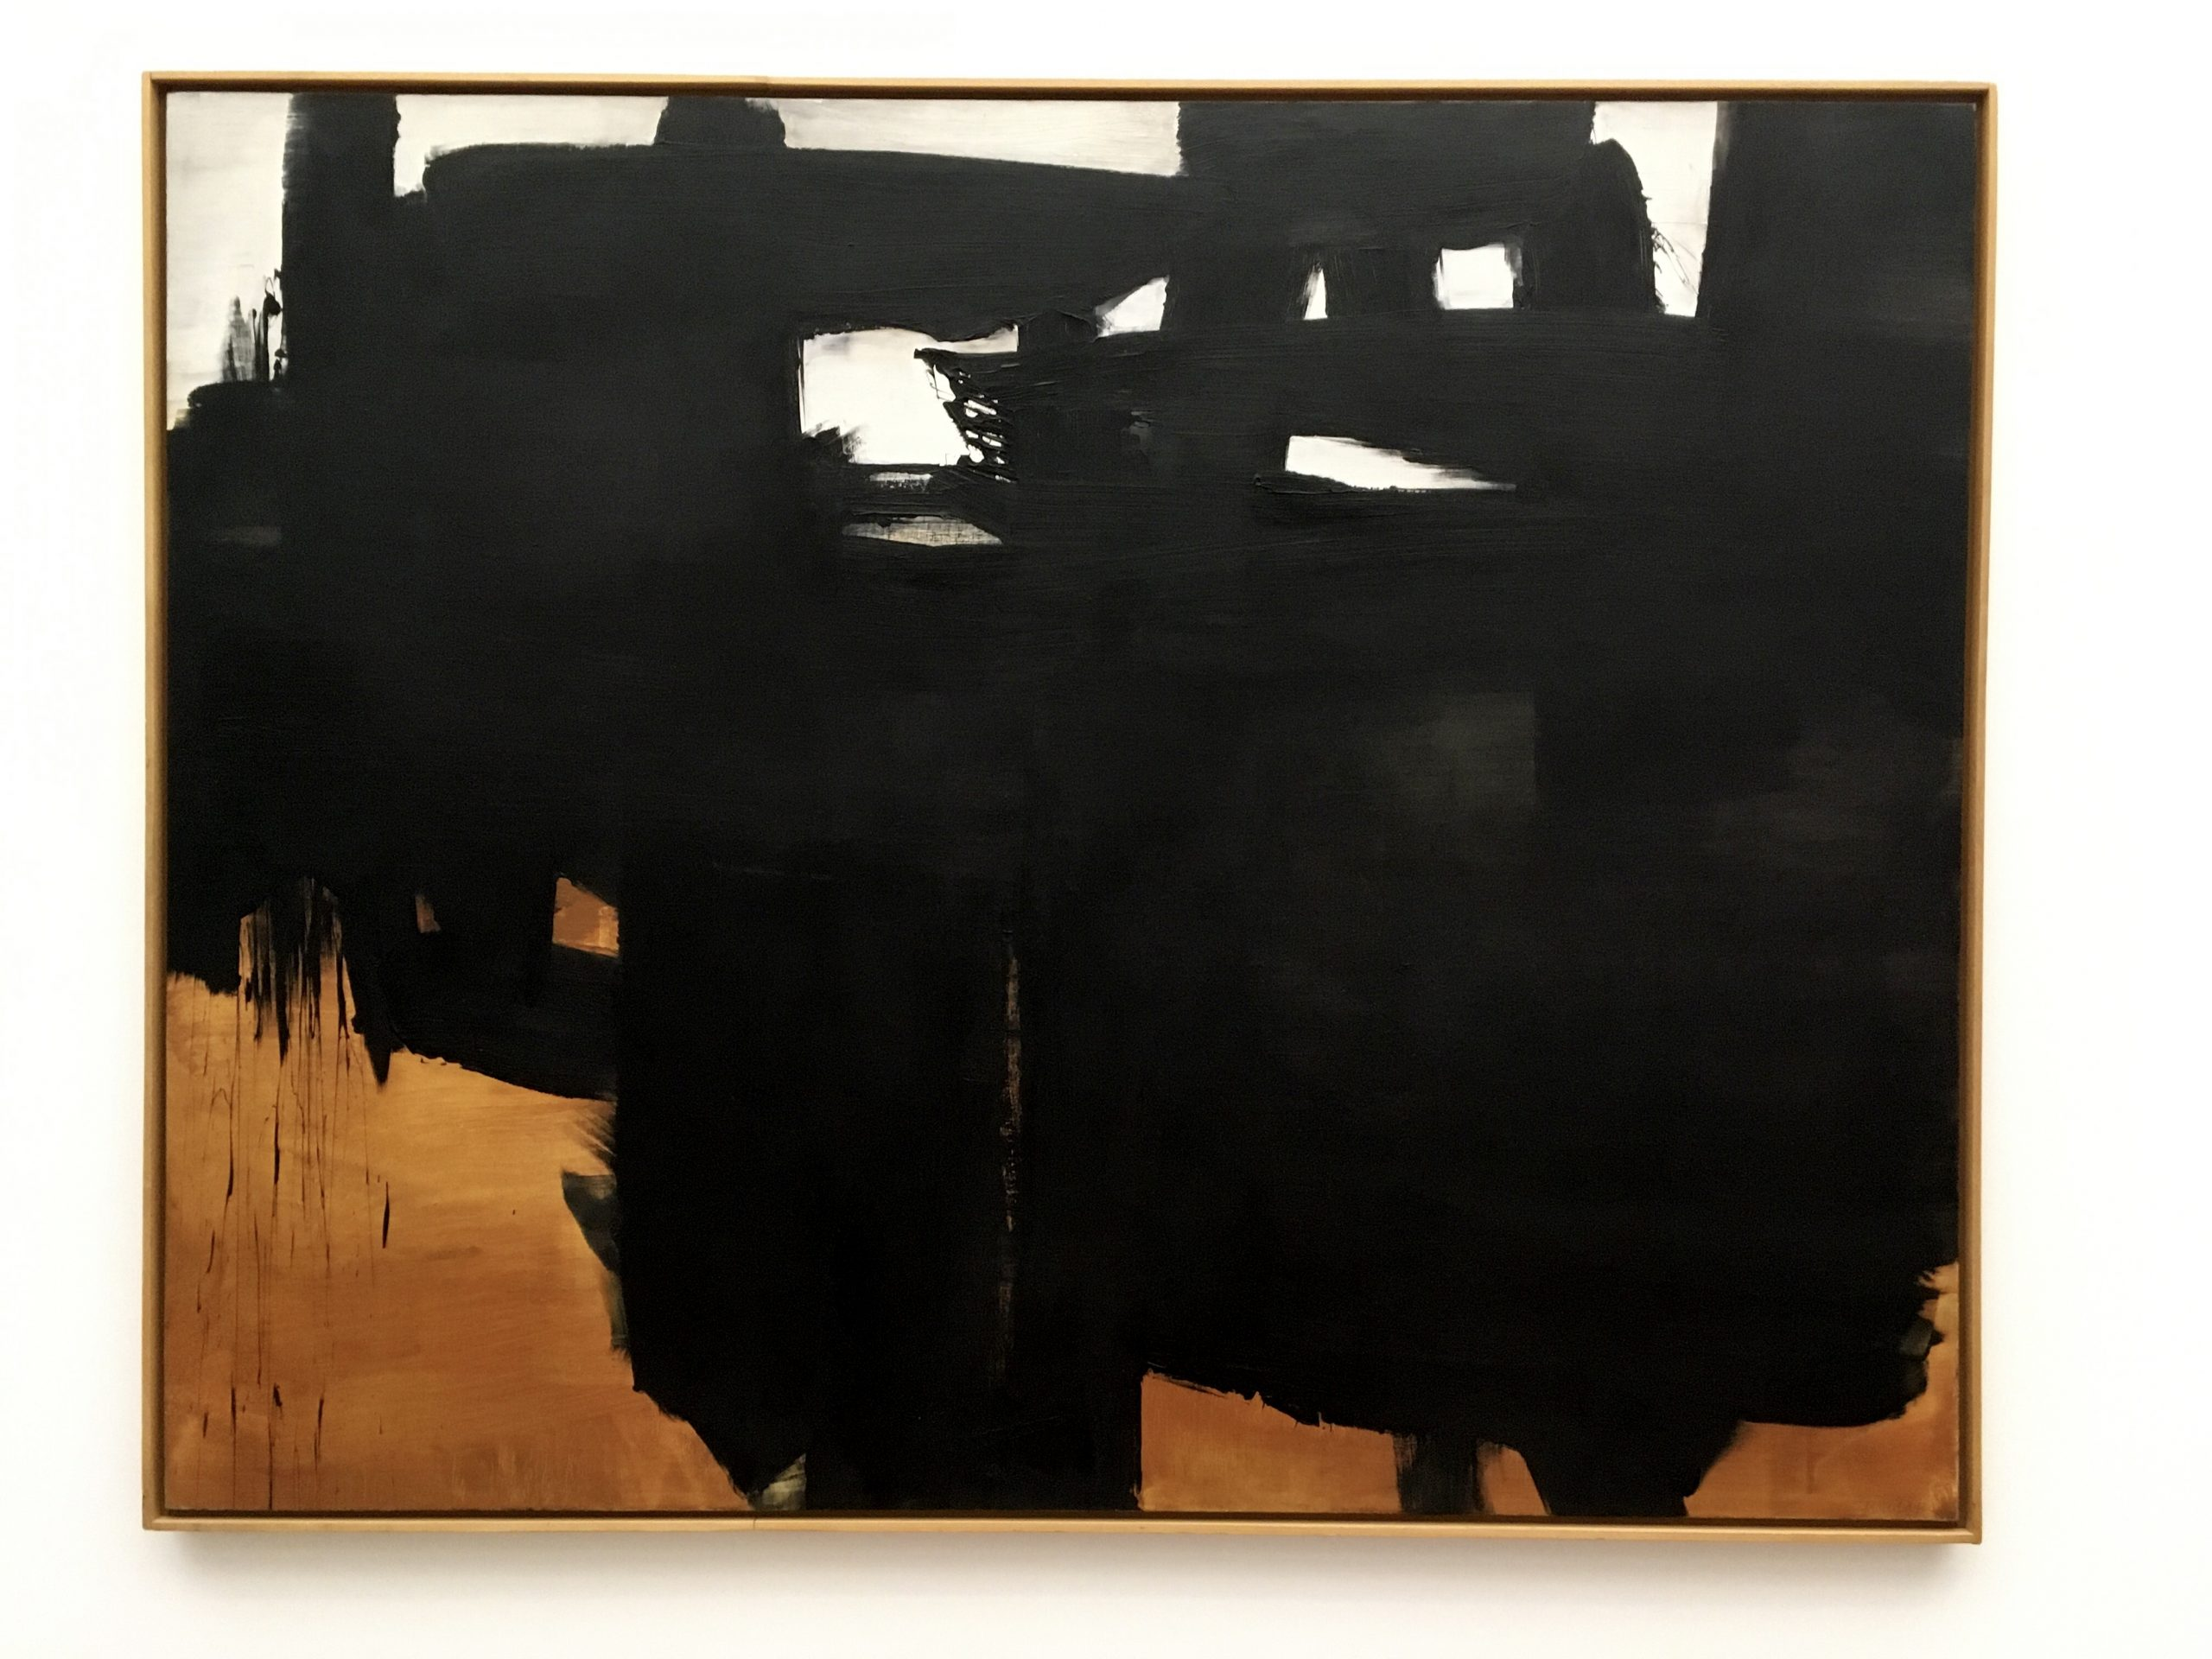 soulages_frieder burda_1966